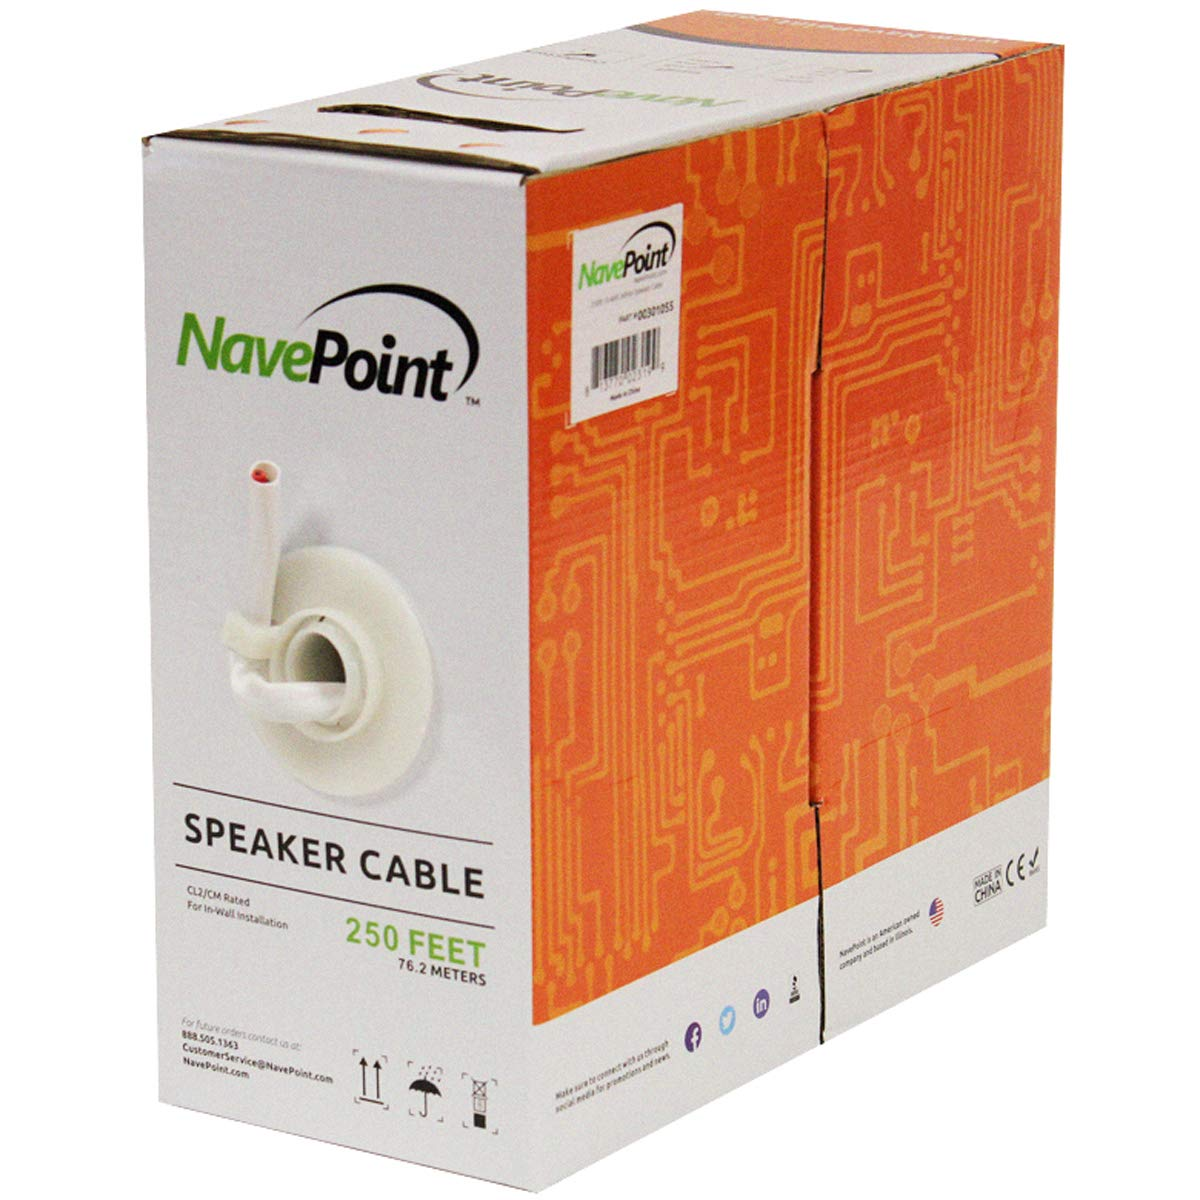 NavePoint 250ft in Wall Audio Speaker Cable Wire CL2 12/2 AWG Gauge 2 Conductor Bulk White by NavePoint